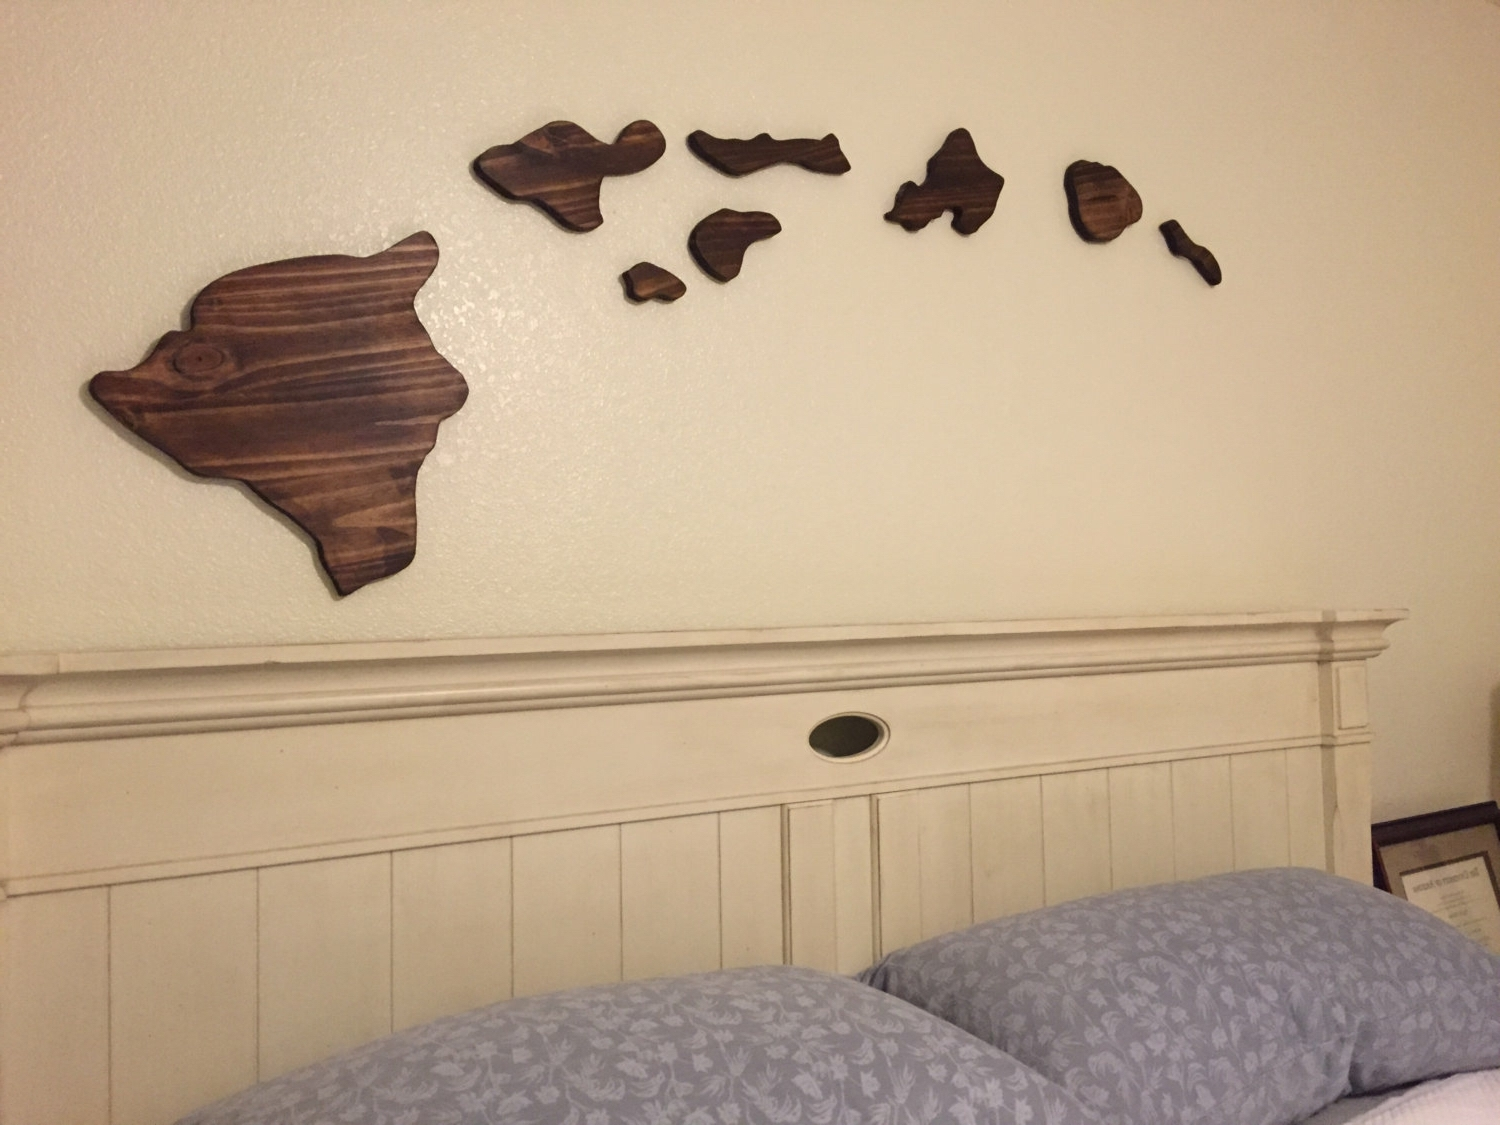 Hawaiian Wall Art Intended For Most Recent Hawaiian Island Chain Wood Carving Wall Set Large 6 Feet Handmade (Gallery 9 of 15)